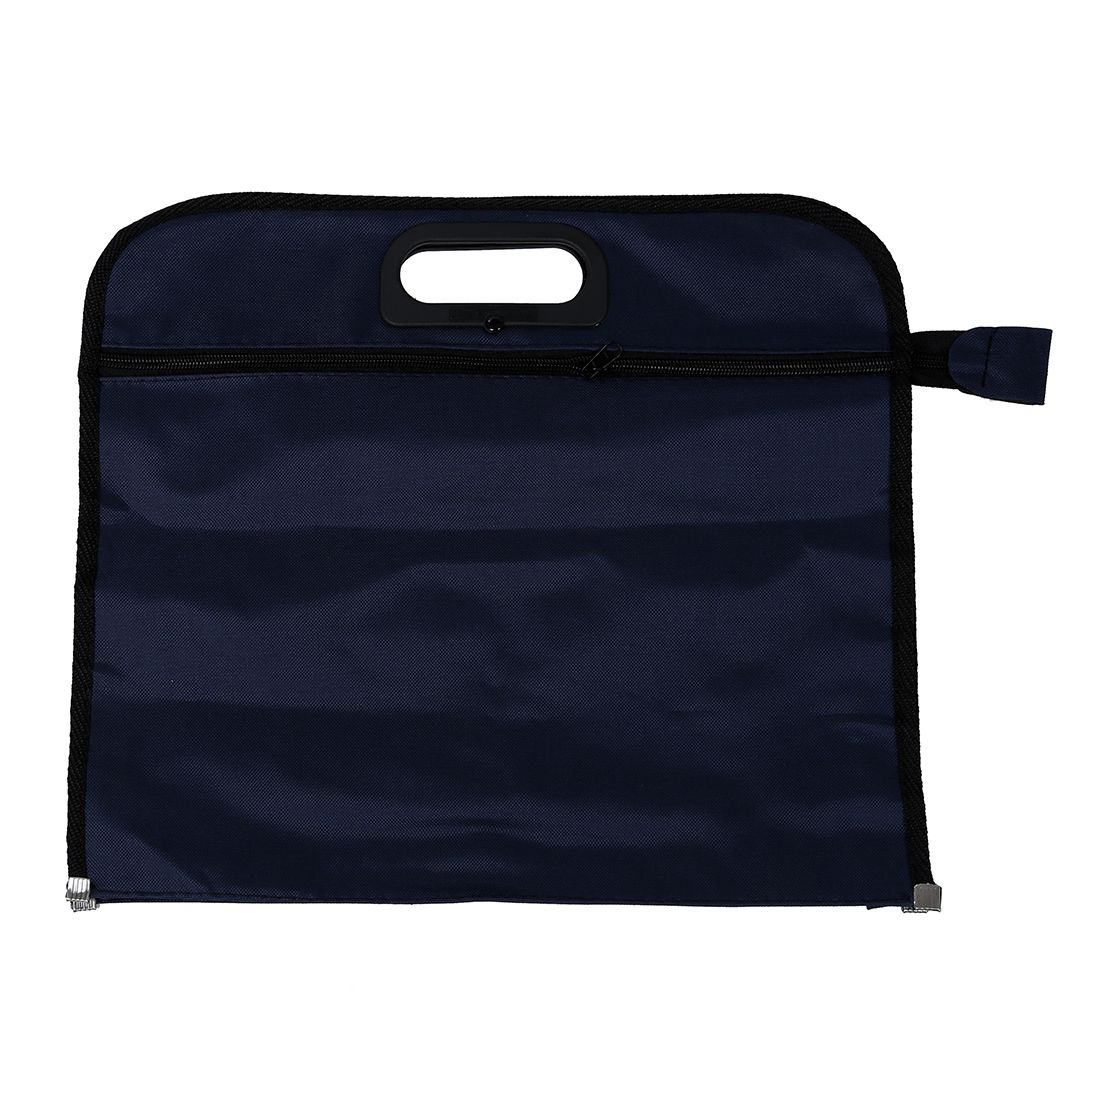 Nylon File Folder Document Bag/Organizer/Portfolio